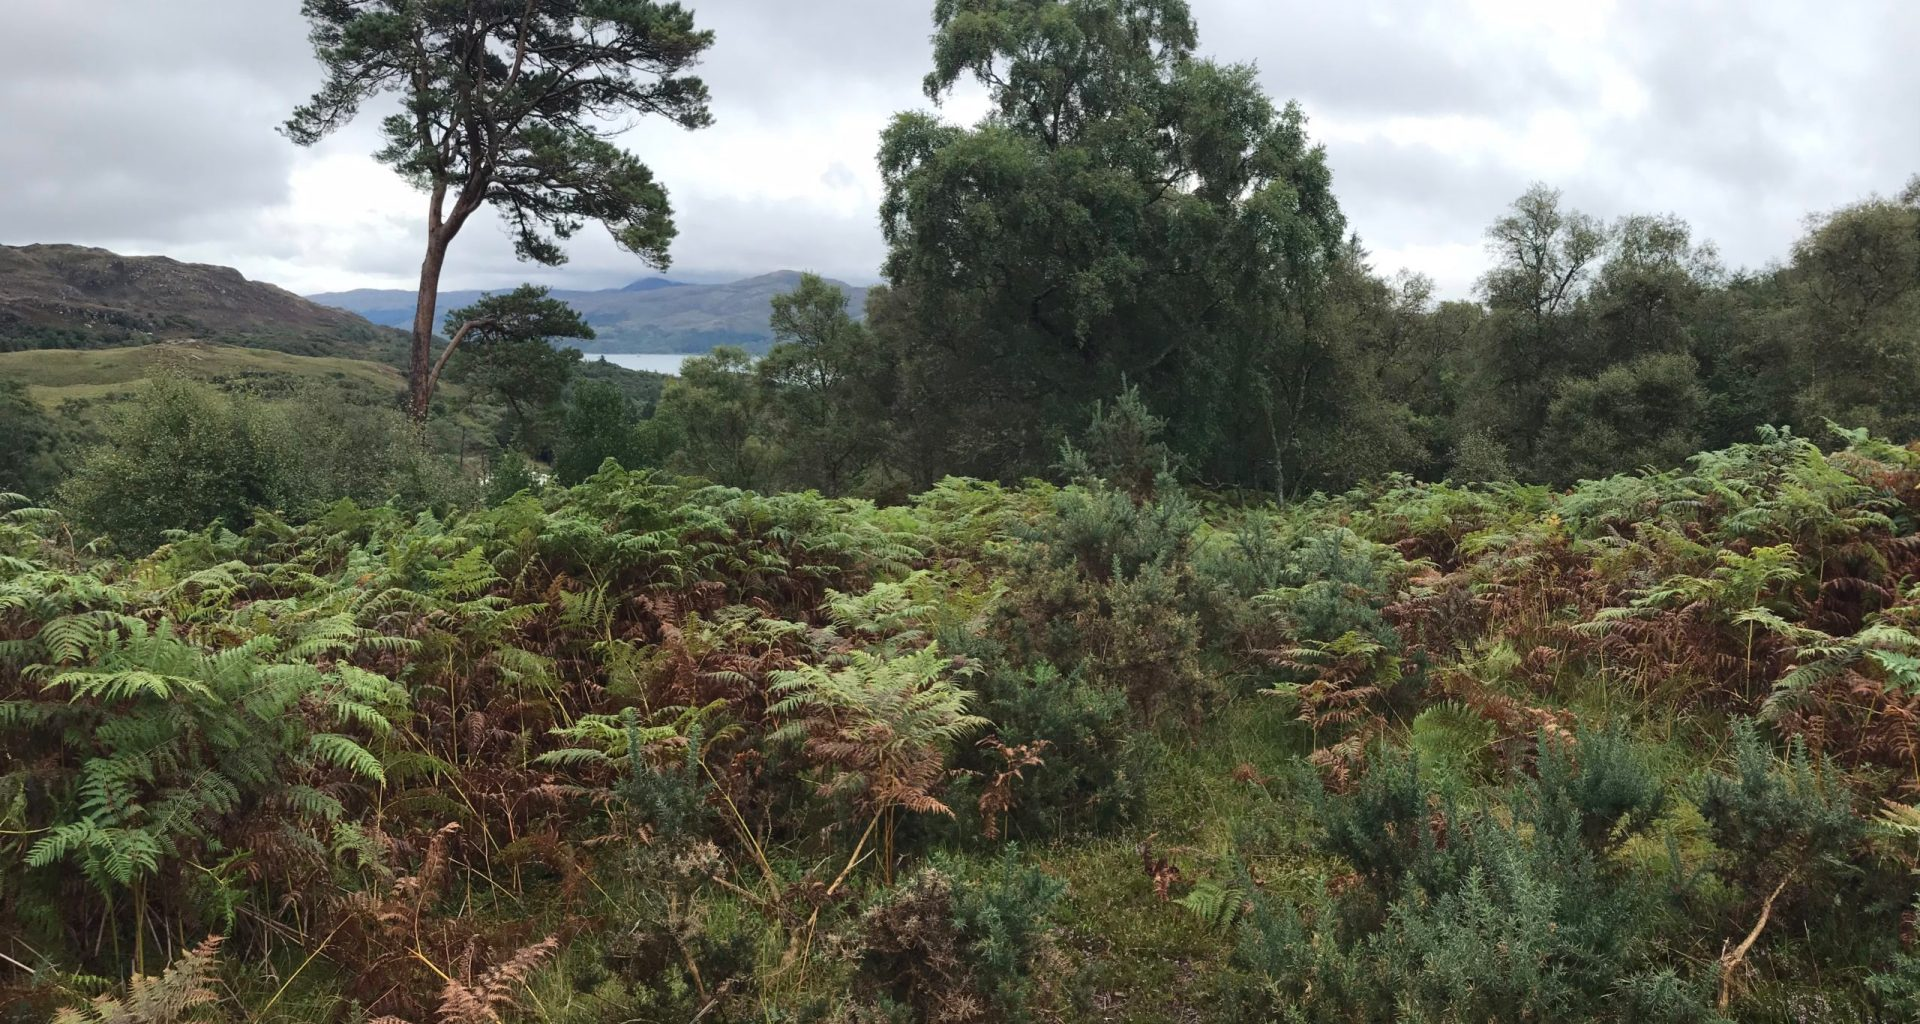 Highland estate owner breaching public access rights, say locals 8